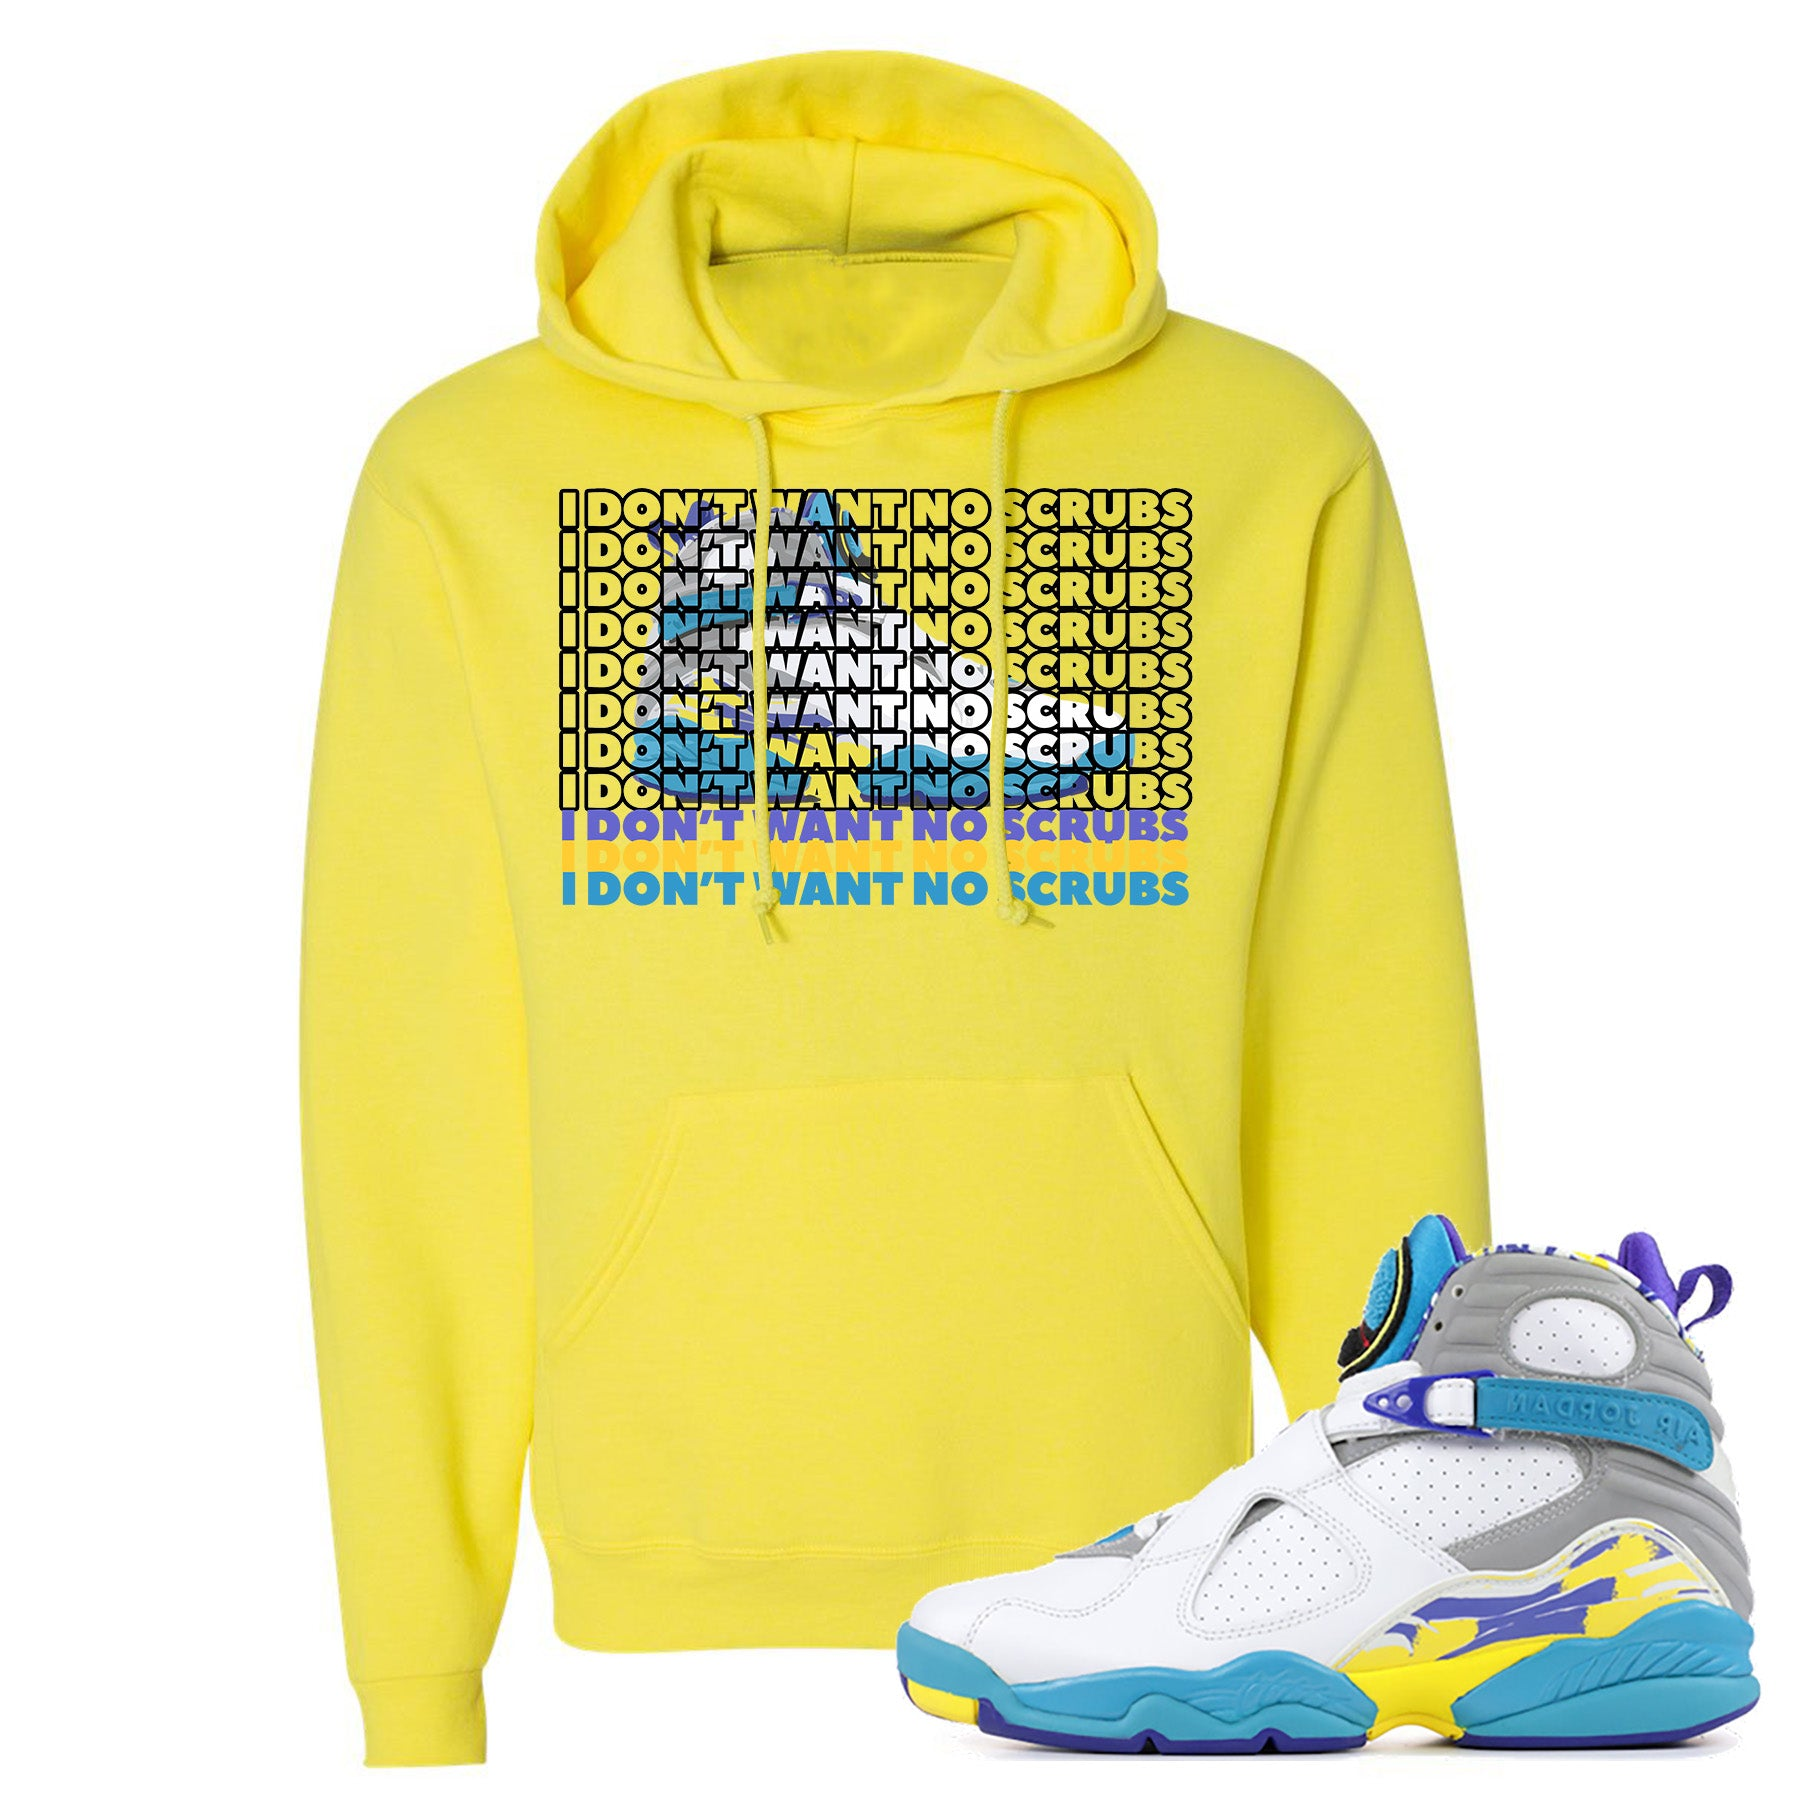 san francisco dd522 9eacb Air Jordan 8 WMNS White Aqua Sneaker Match I Don't Want No Scrub Neon  Yellow Hoodie